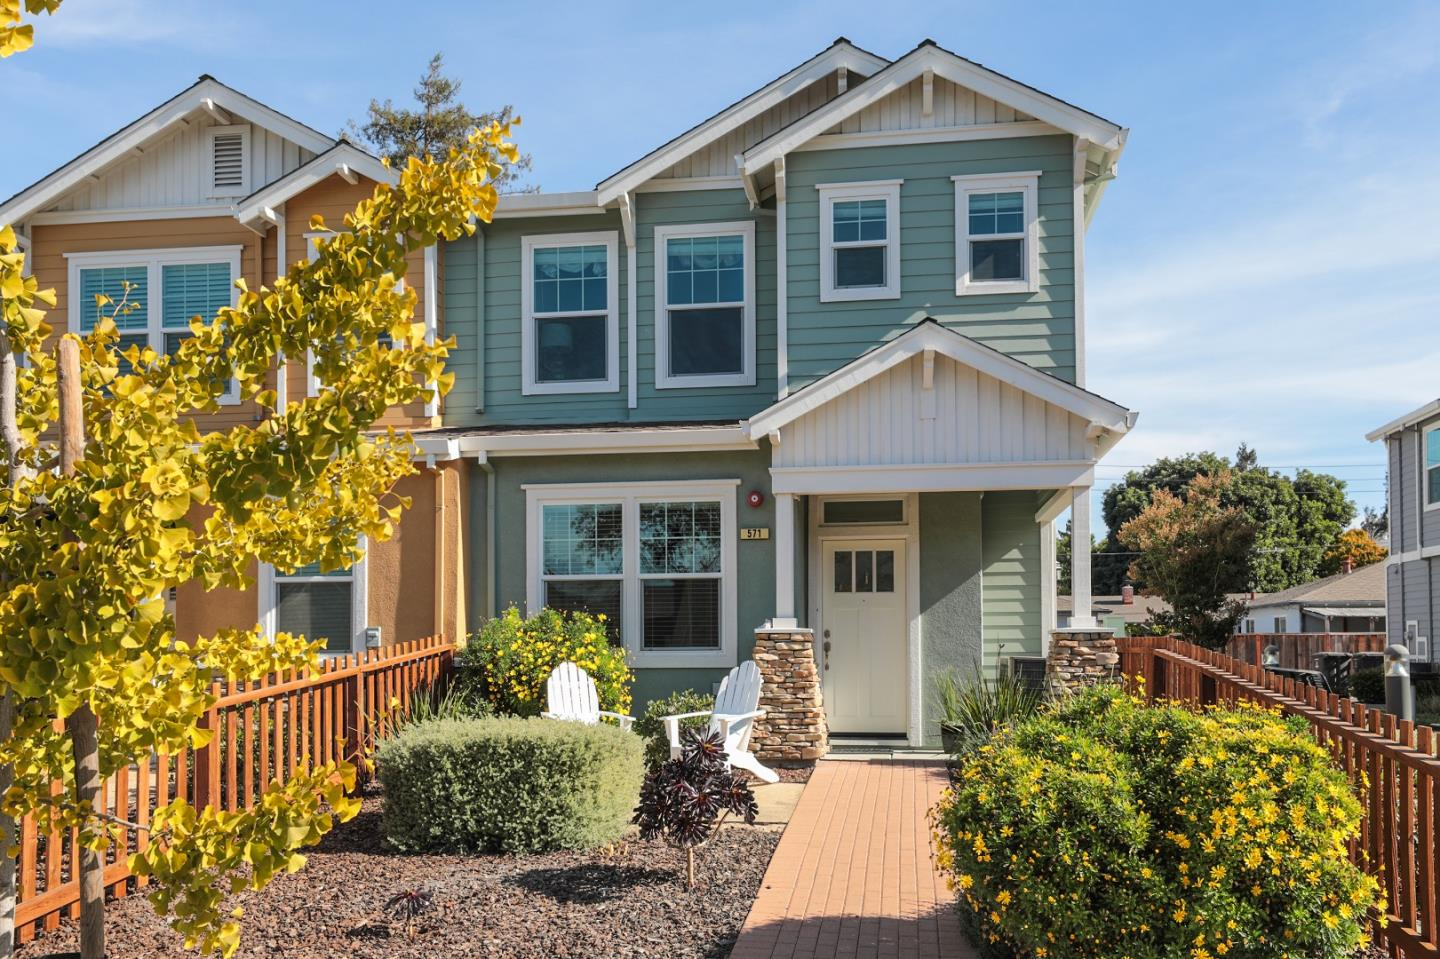 571 PIAZZA DR, MOUNTAIN VIEW, CA 94043